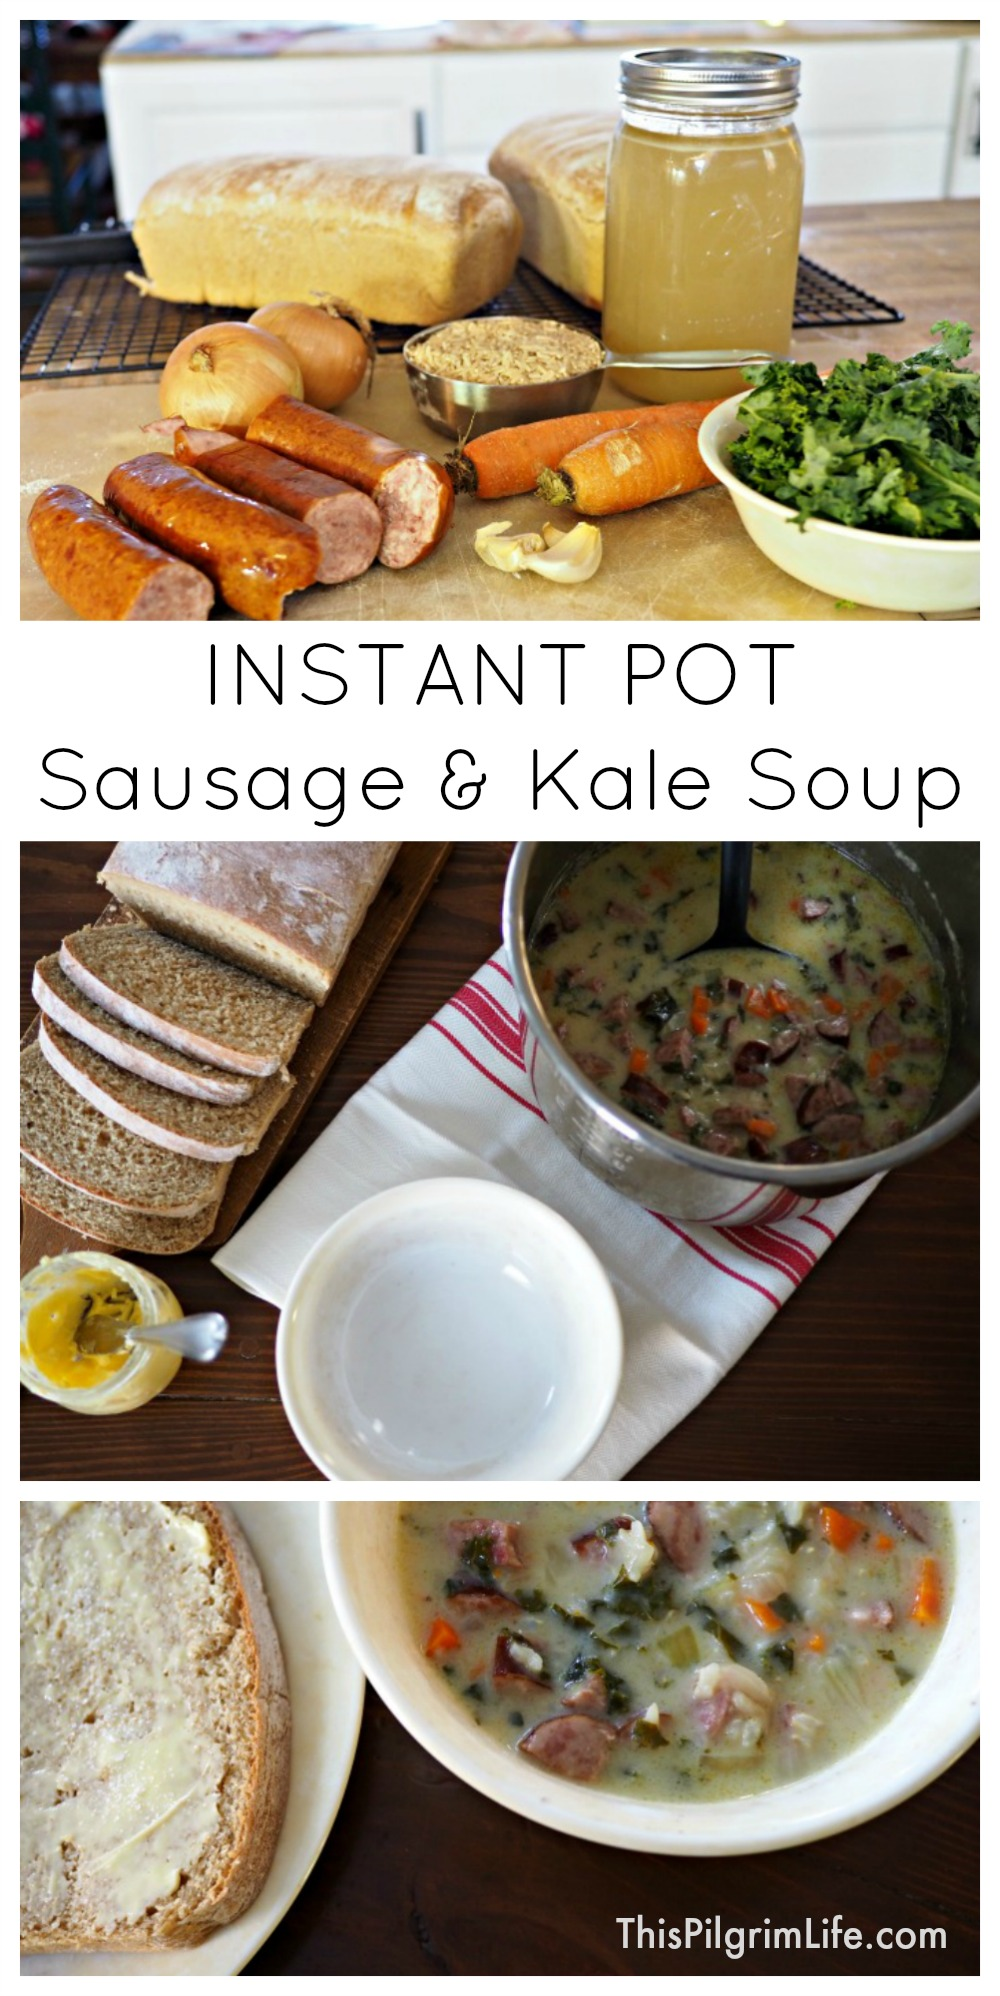 Quick, easy, and DELICIOUS recipe for sausage and kale soup in the Instant Pot!